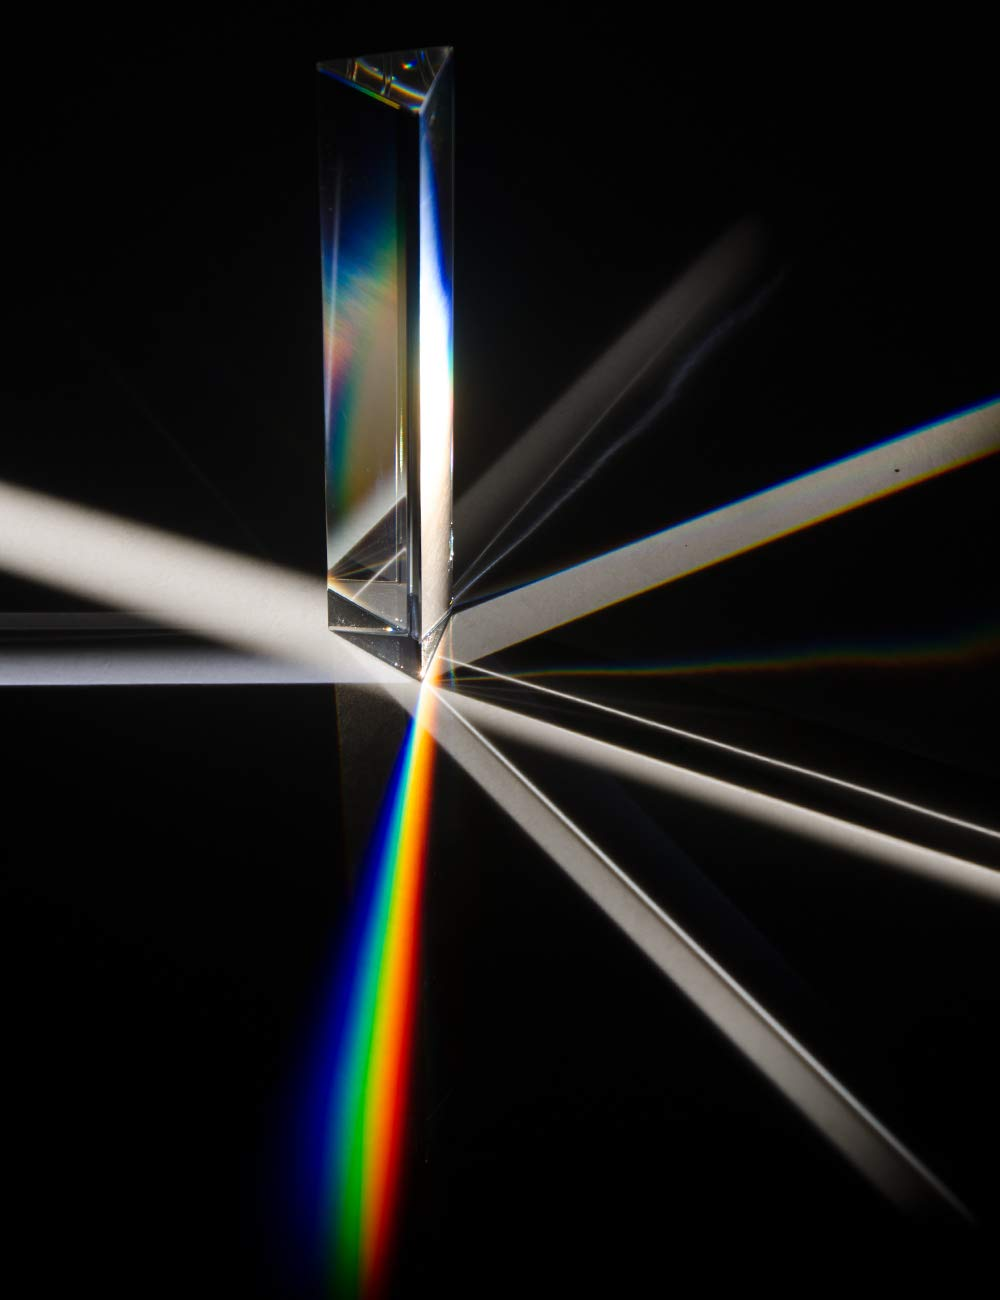 """Prism Photography Prism Photographer Gifts Optical Glass Triangular Prism 6""""Used for Teaching Light Spectrum Physics Rainbow Manufacturer Sun Catcher 150mm Lisheng Crystal Science Education"""